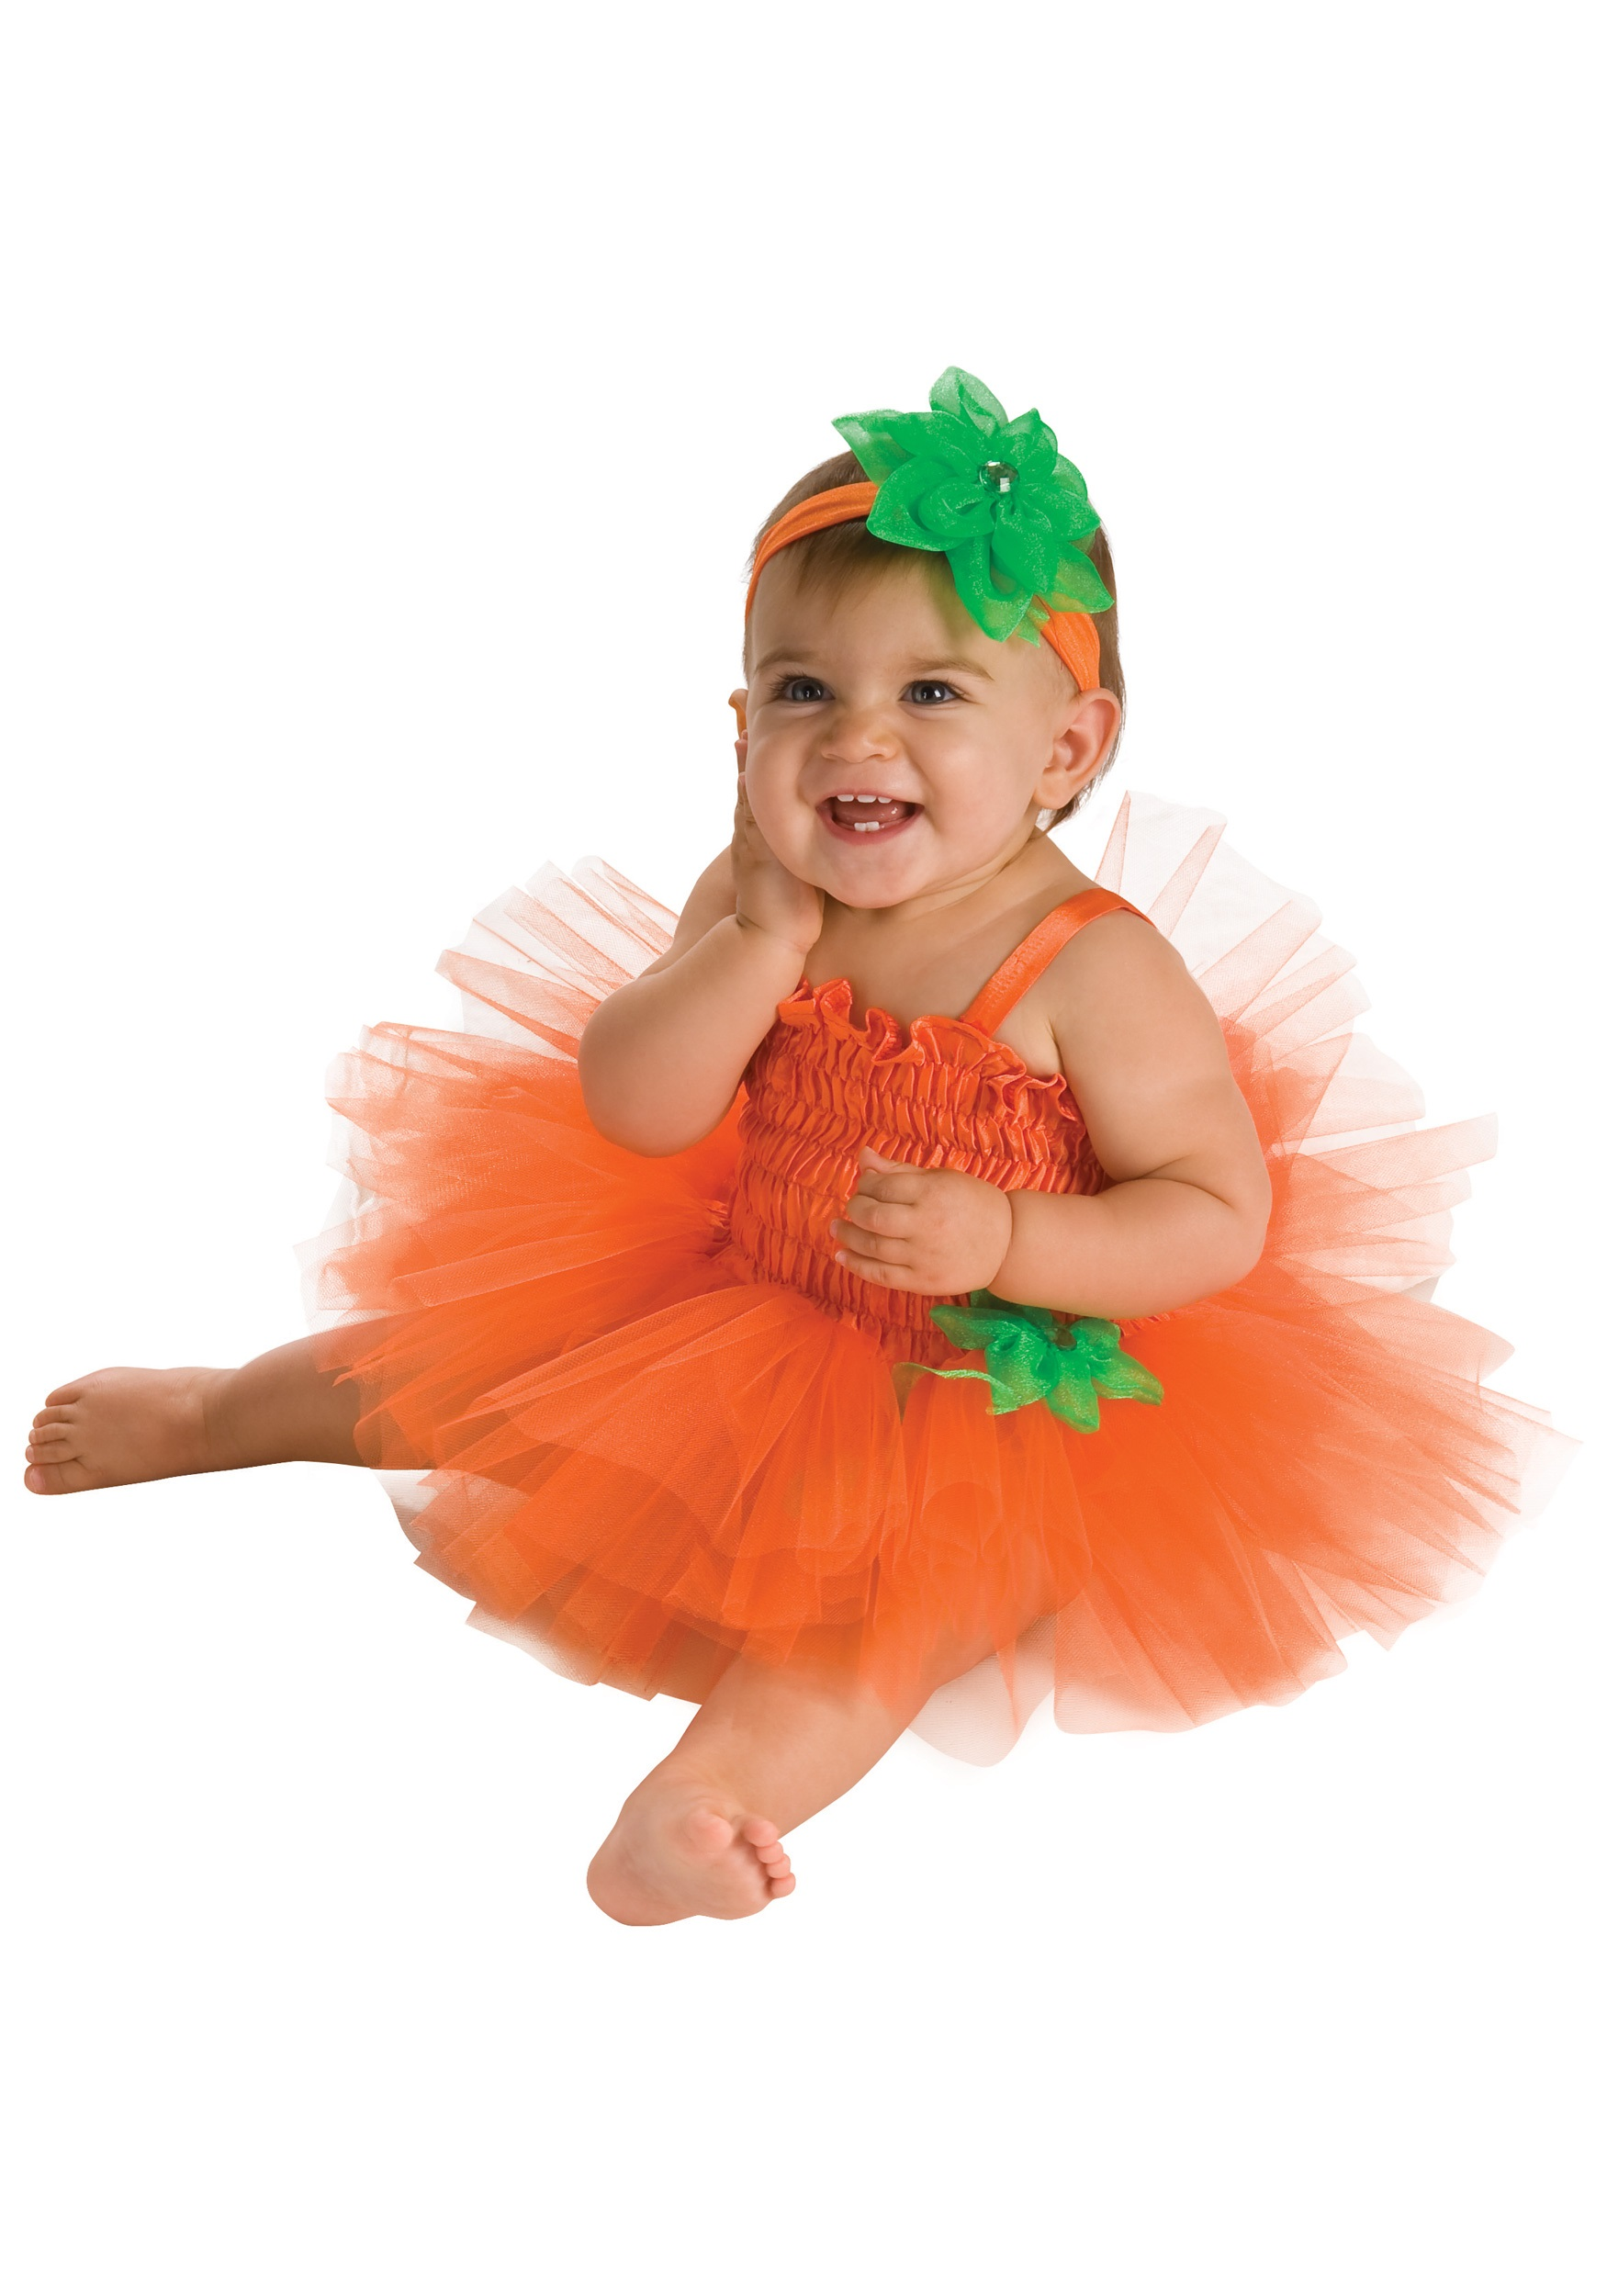 Fully-lined, with posable tail InCharacter Baby Lil' Garden Gnome Costume. by Shop Best Sellers · Deals of the Day · Fast Shipping · Read Ratings & ReviewsBrands: TeeStars, Ultimate Halloween Costume, Moon Kitty, Rubie's and more.